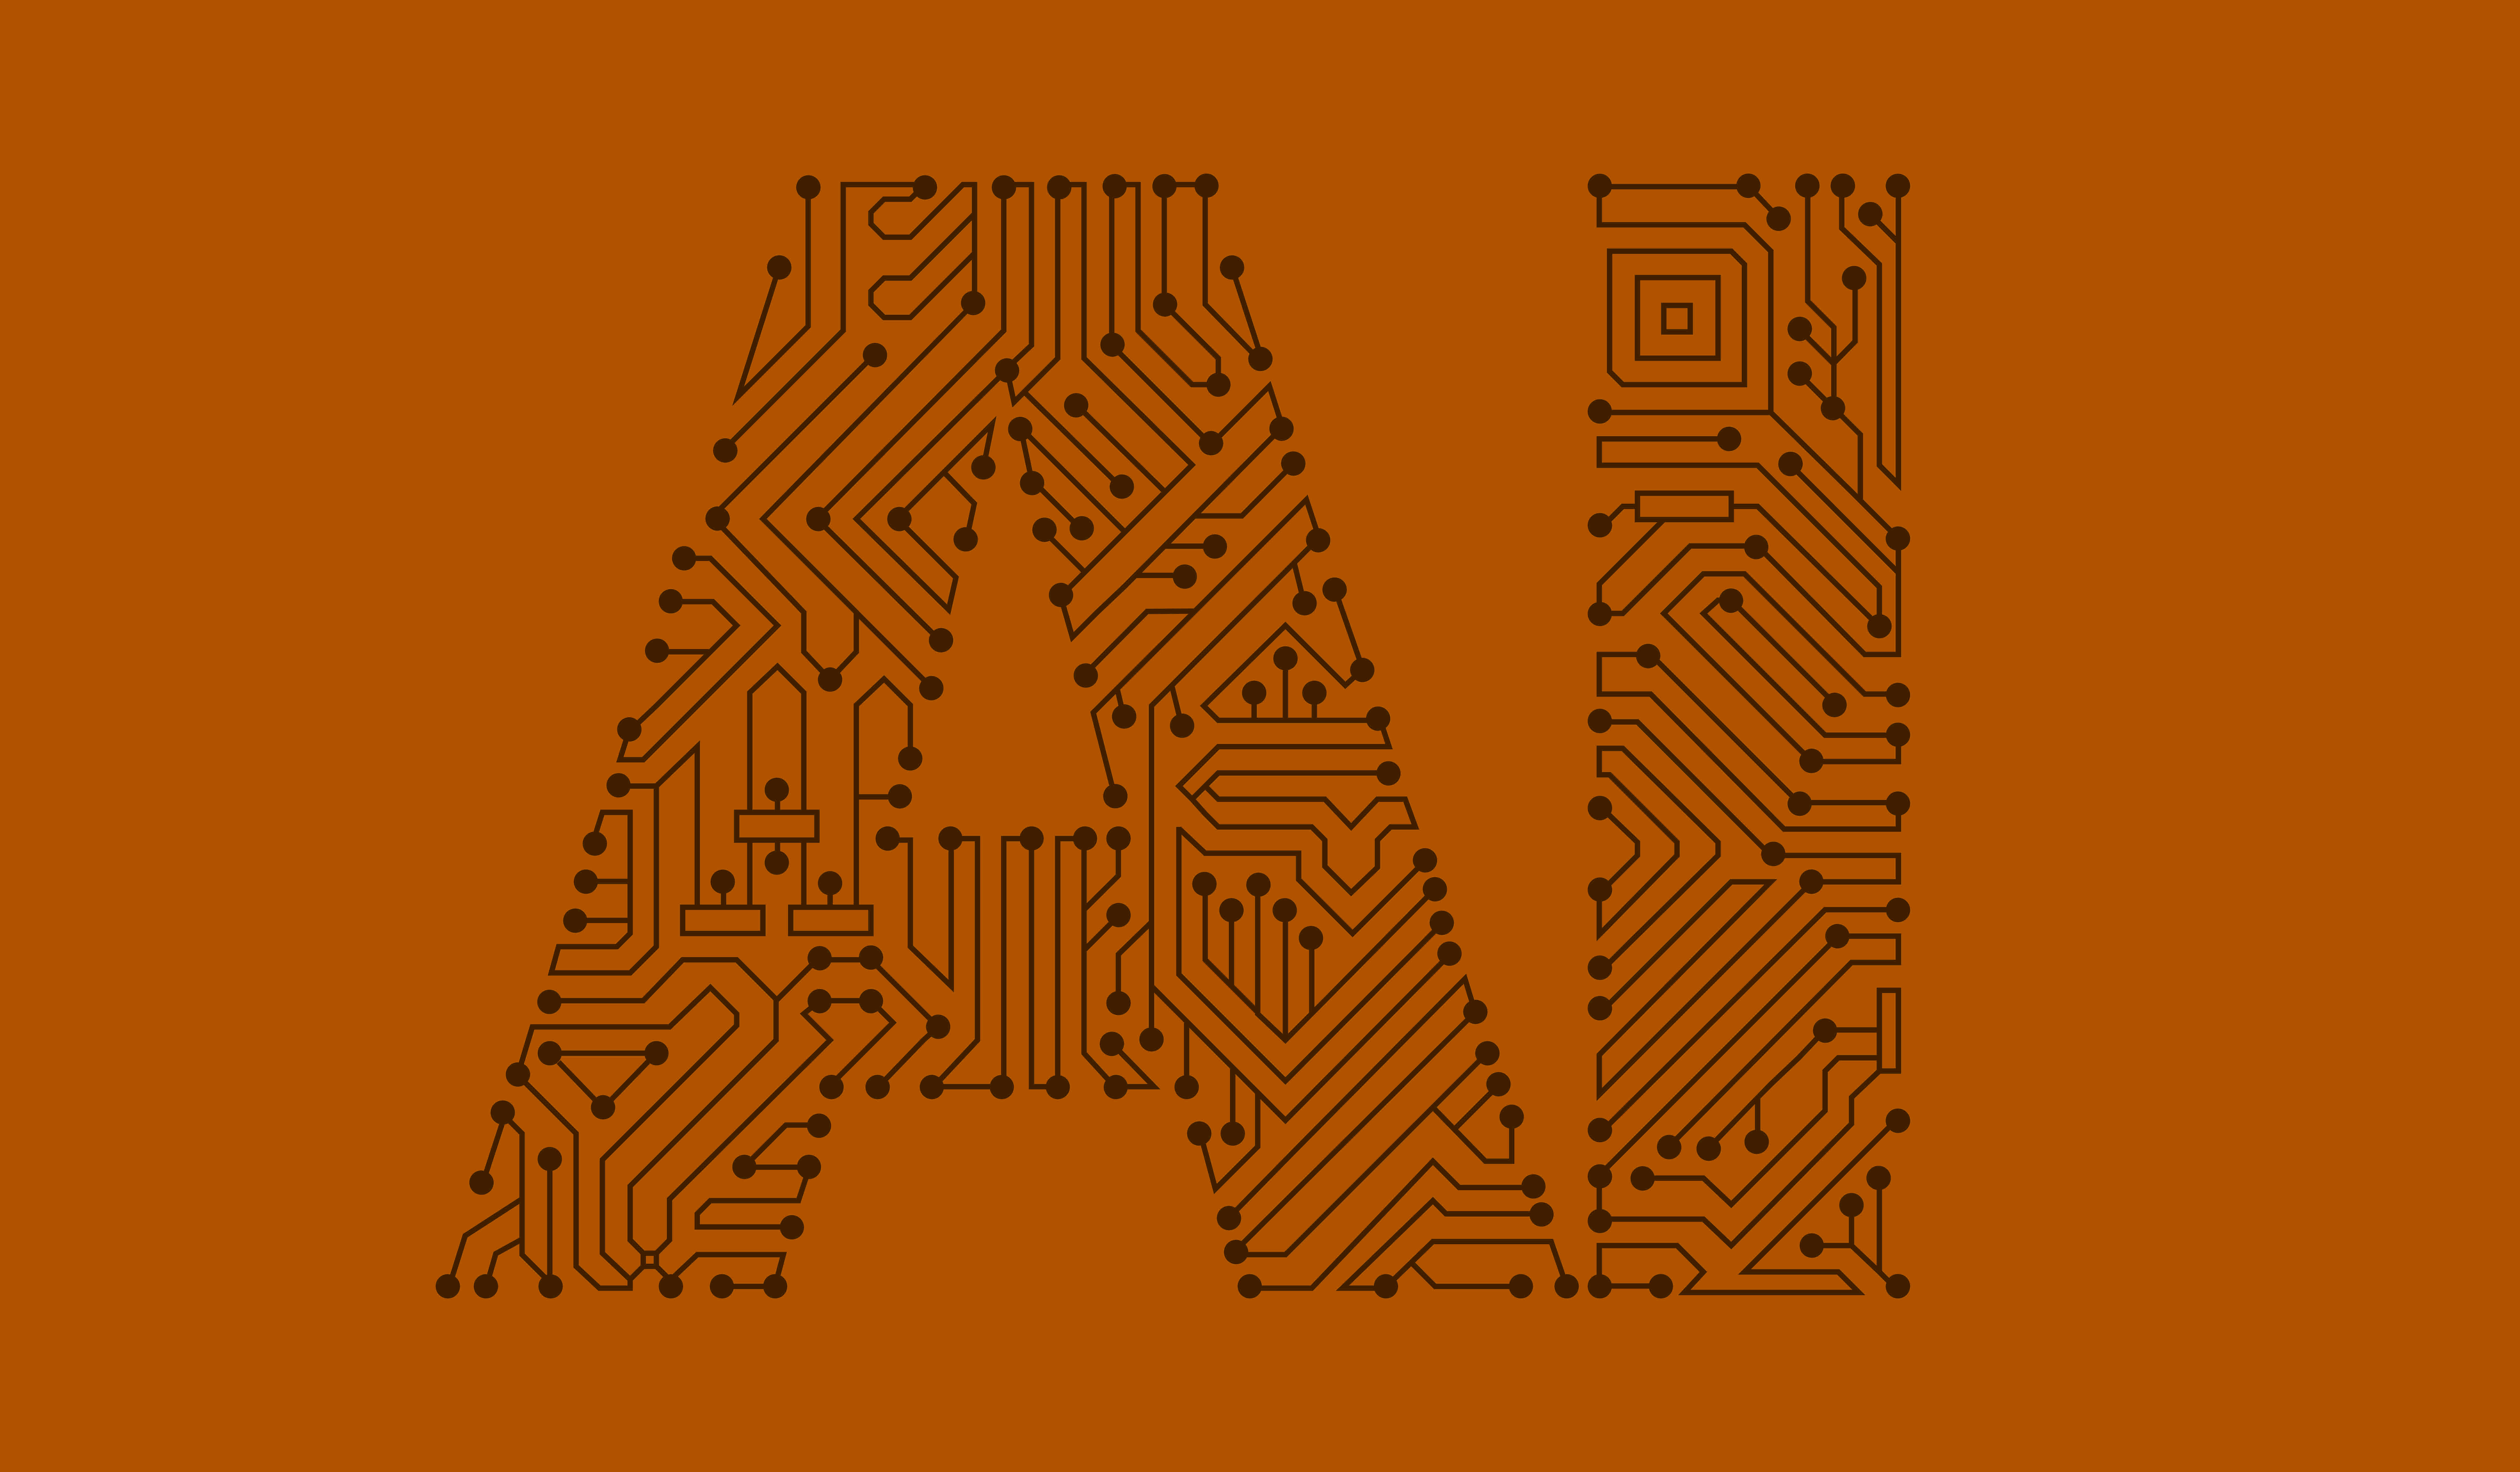 Banner image orange backgound with AI written on it